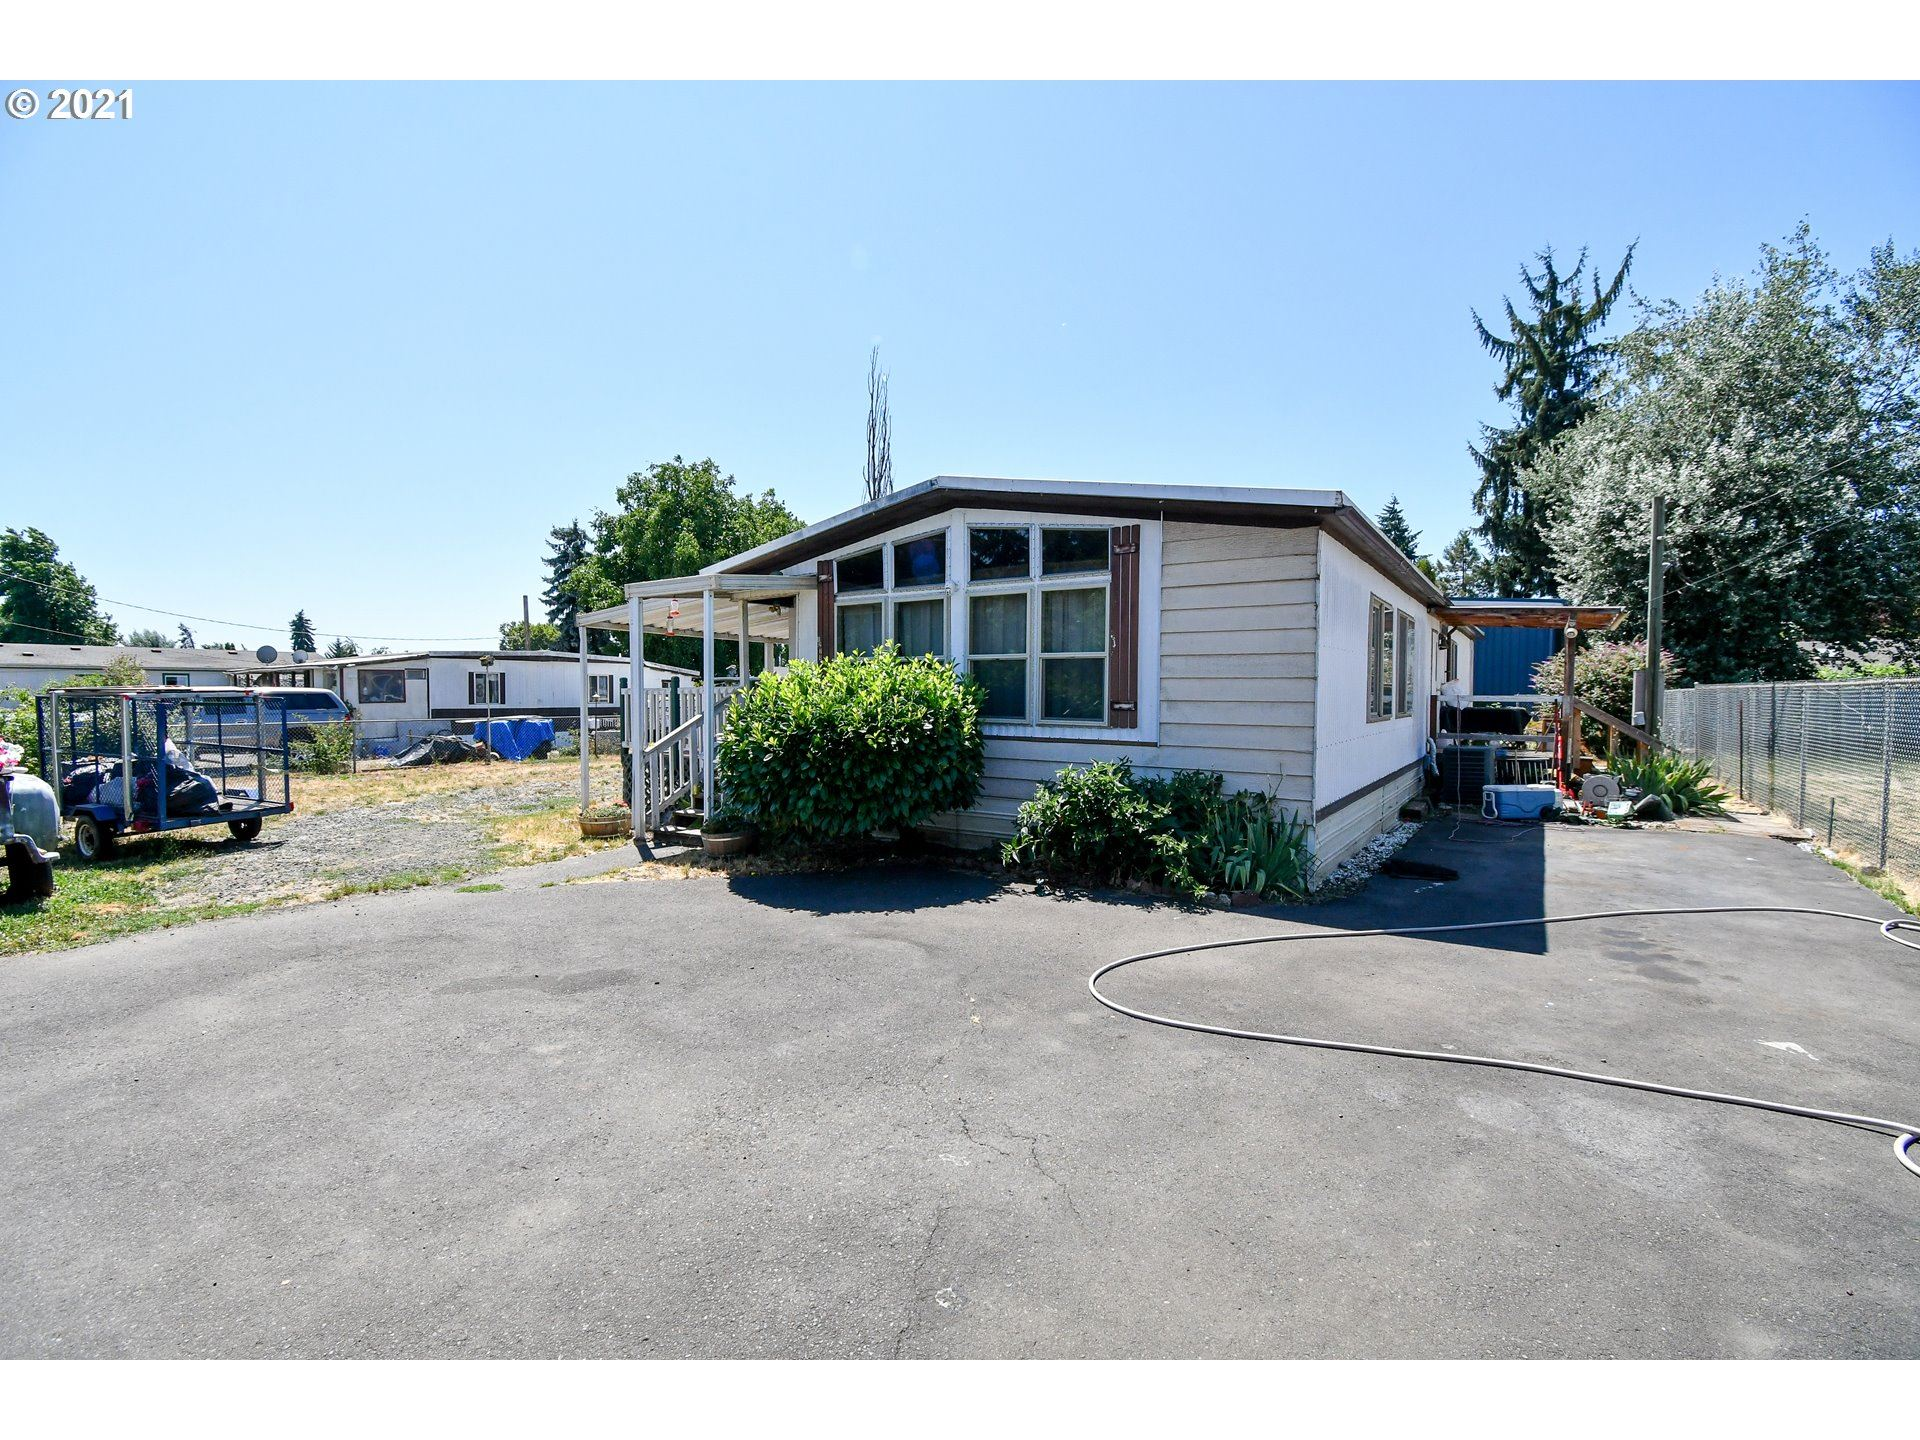 1270 34TH ST, Springfield, OR 97478 - MLS#: 21649064